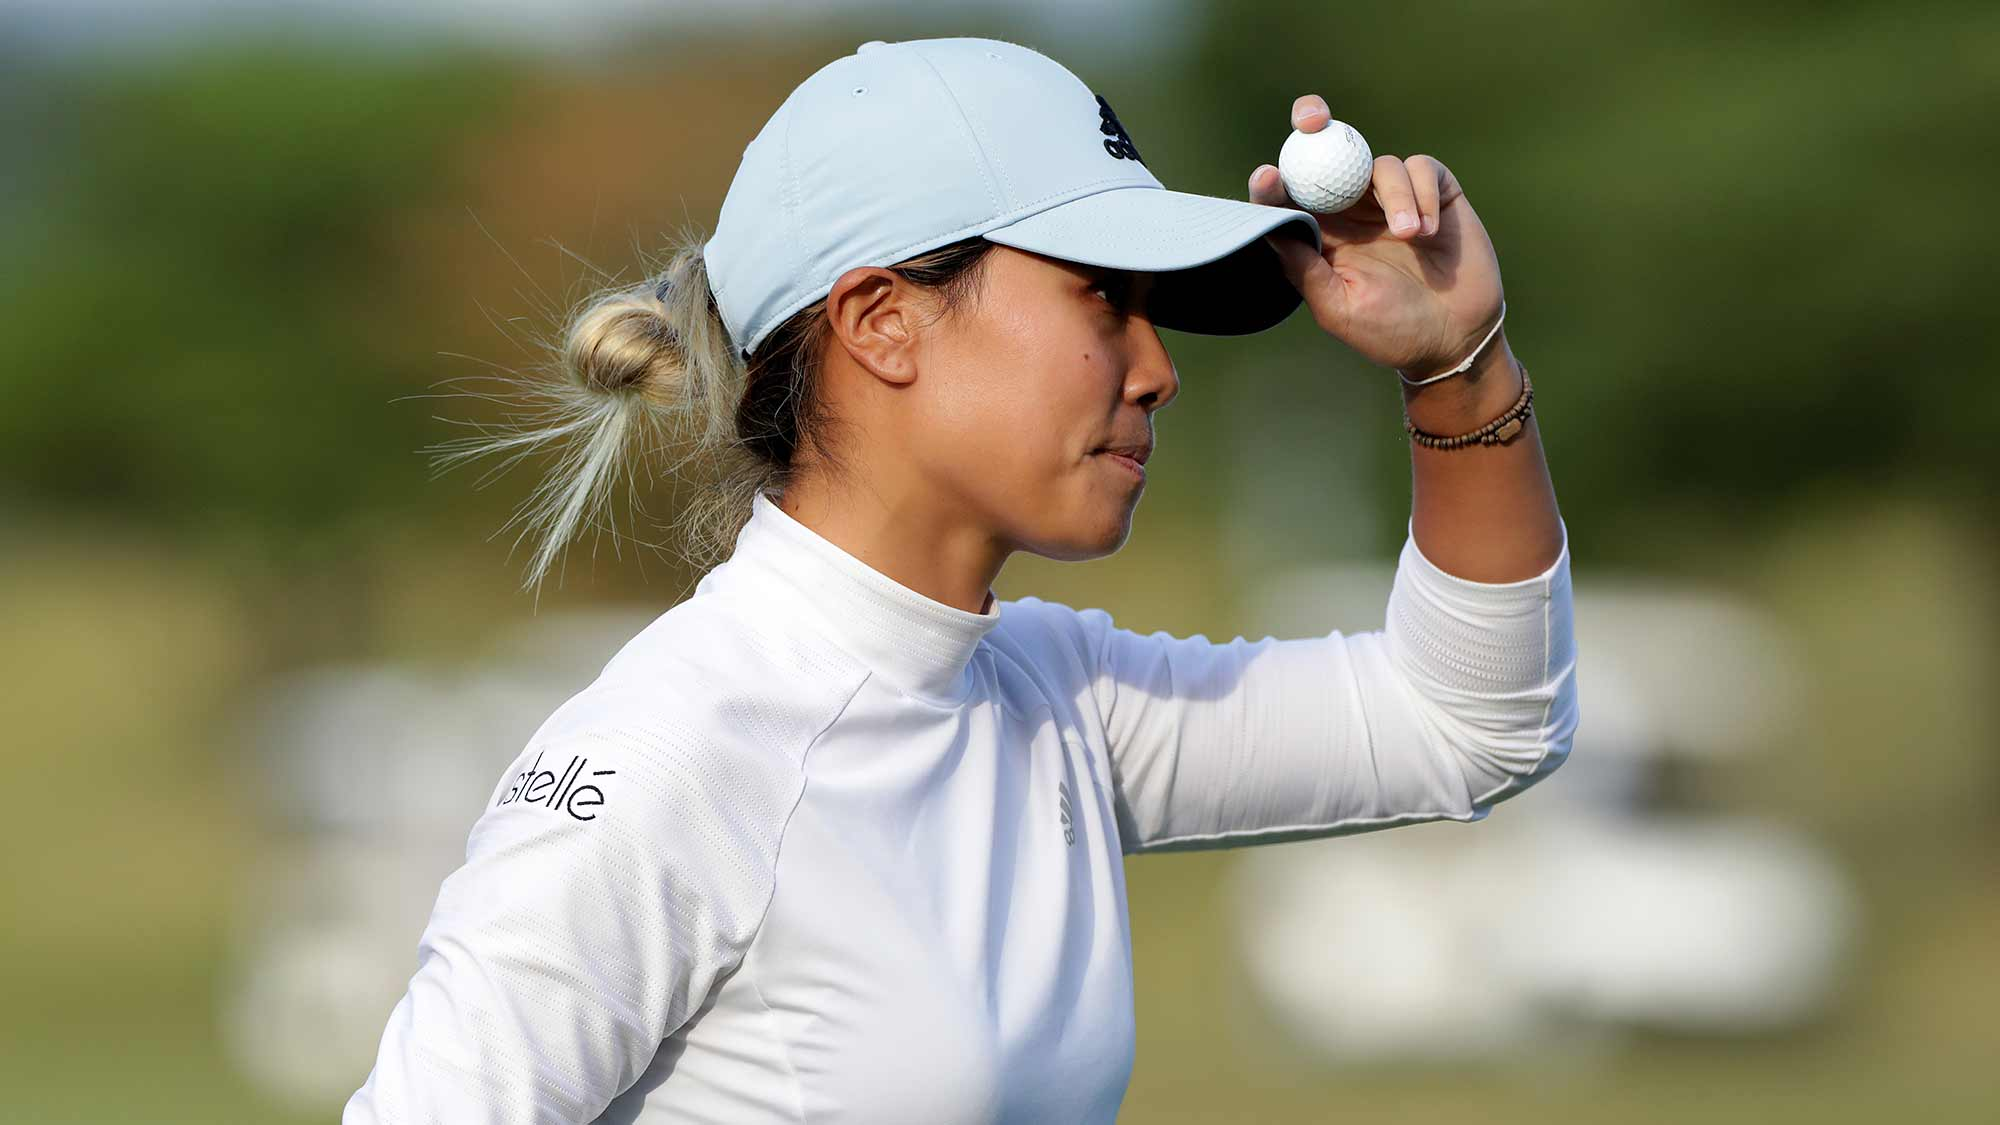 Danielle Kang of USA acknowledges the gallery on the eighteenth hole during Round 3 of 2019 BMW Ladies Championship at LPGA International Busan on October 26, 2019 in Busan, Republic of Korea